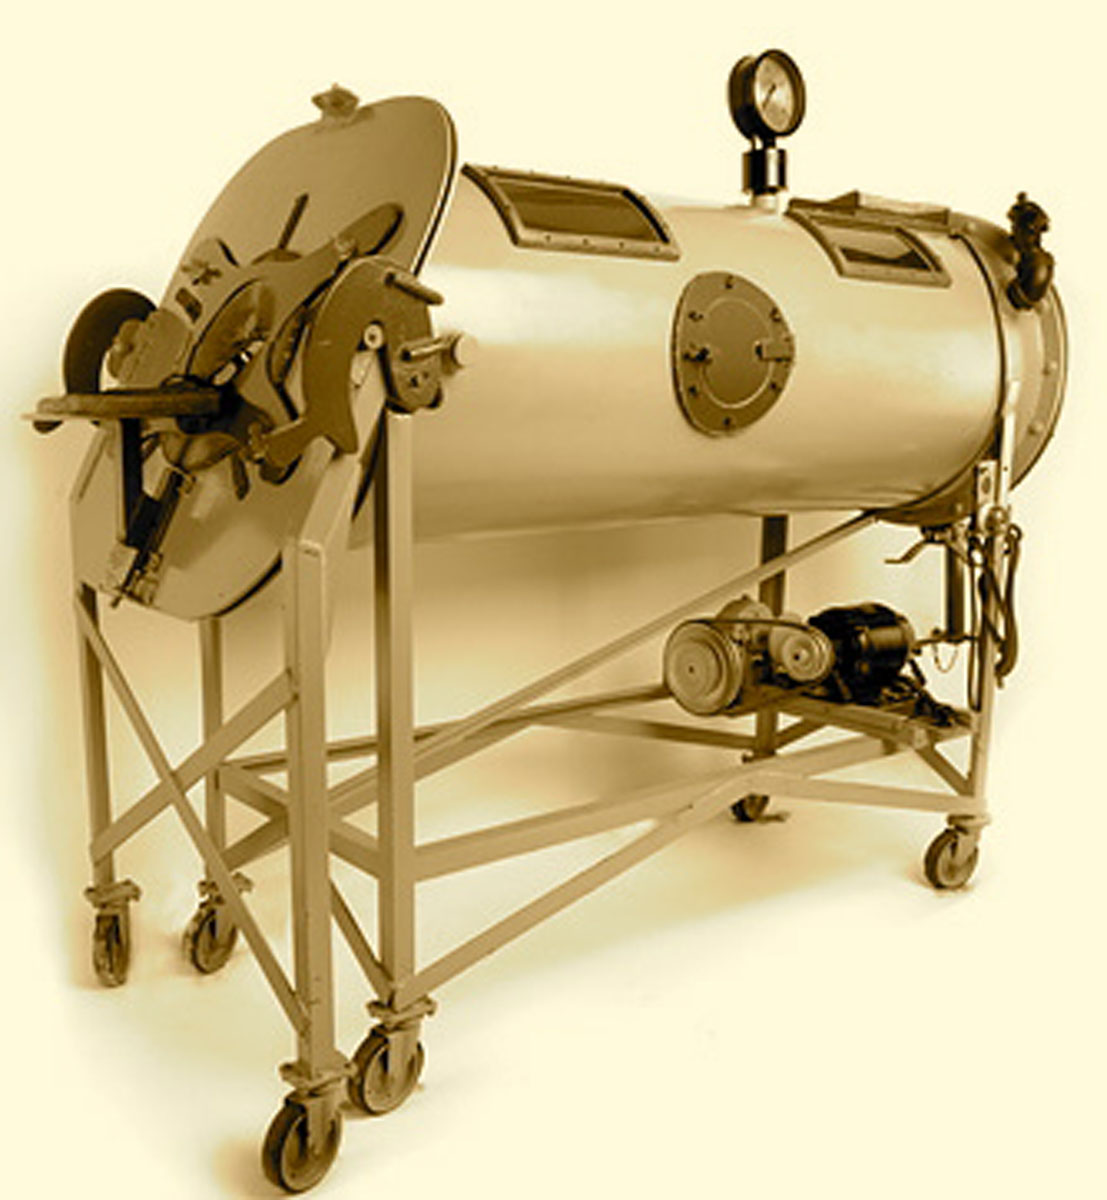 1931 Emerson's Early Iron Lung